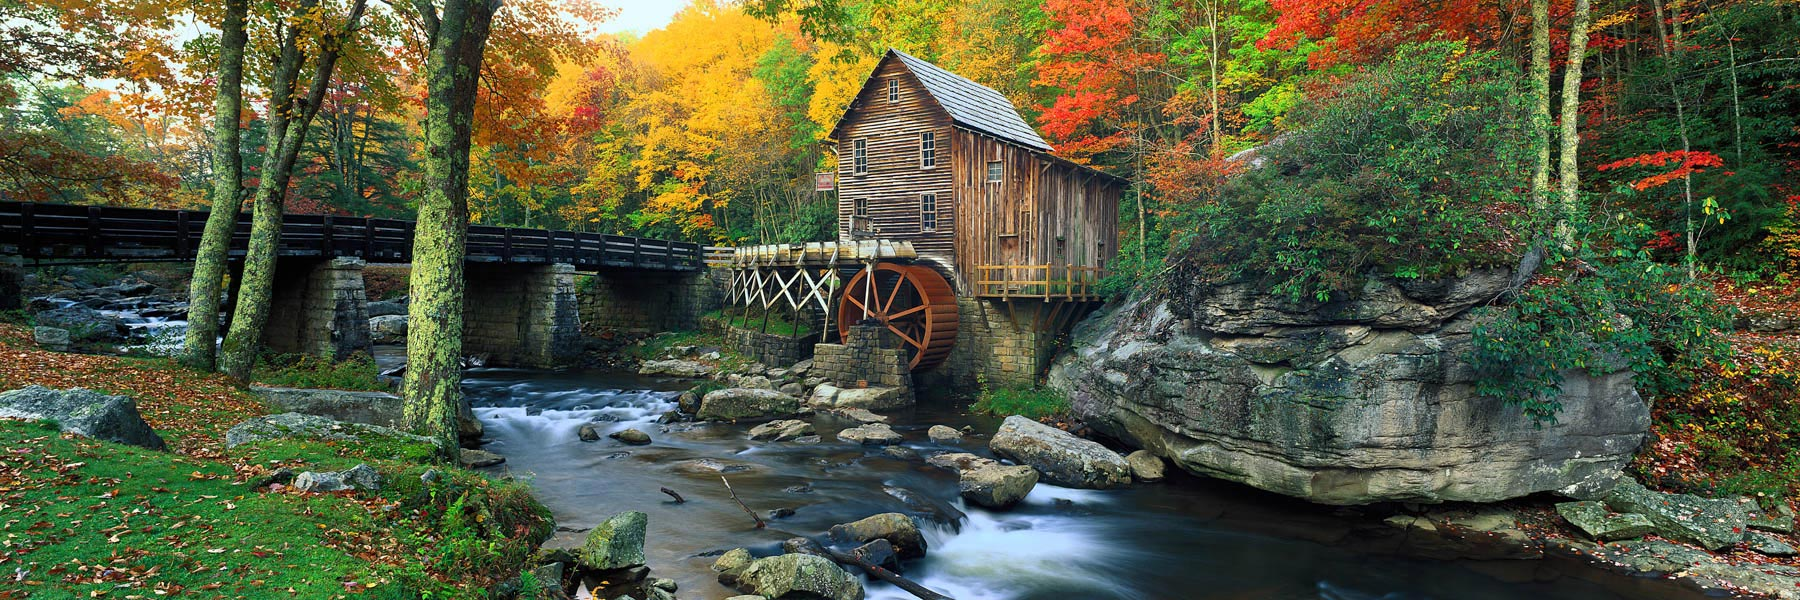 Glade Creek Grist Mill in West Virginia, USA.